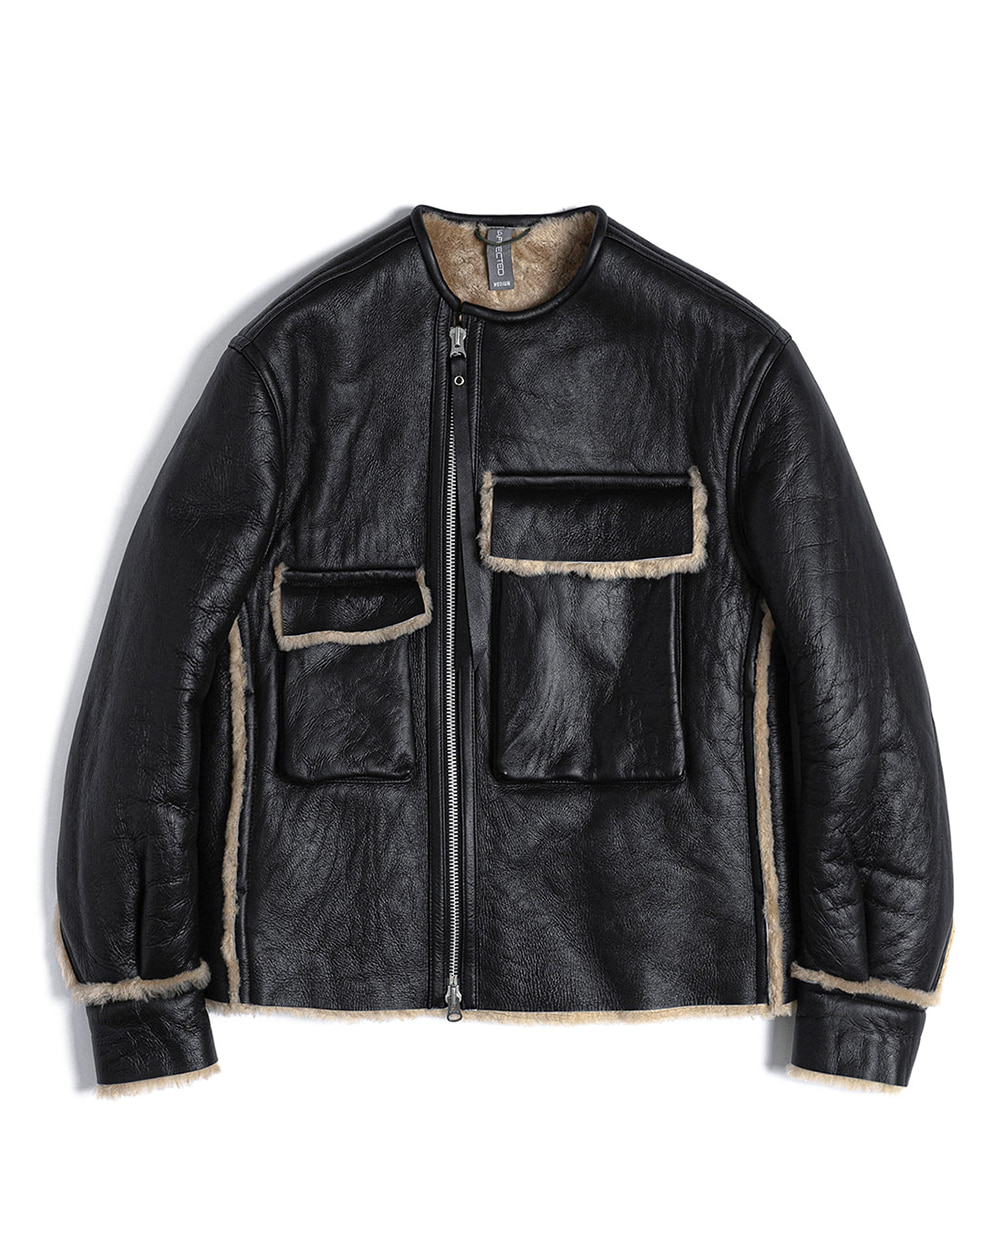 언어펙티드 PATCH POCKETS MOUTON JACKET (Black)